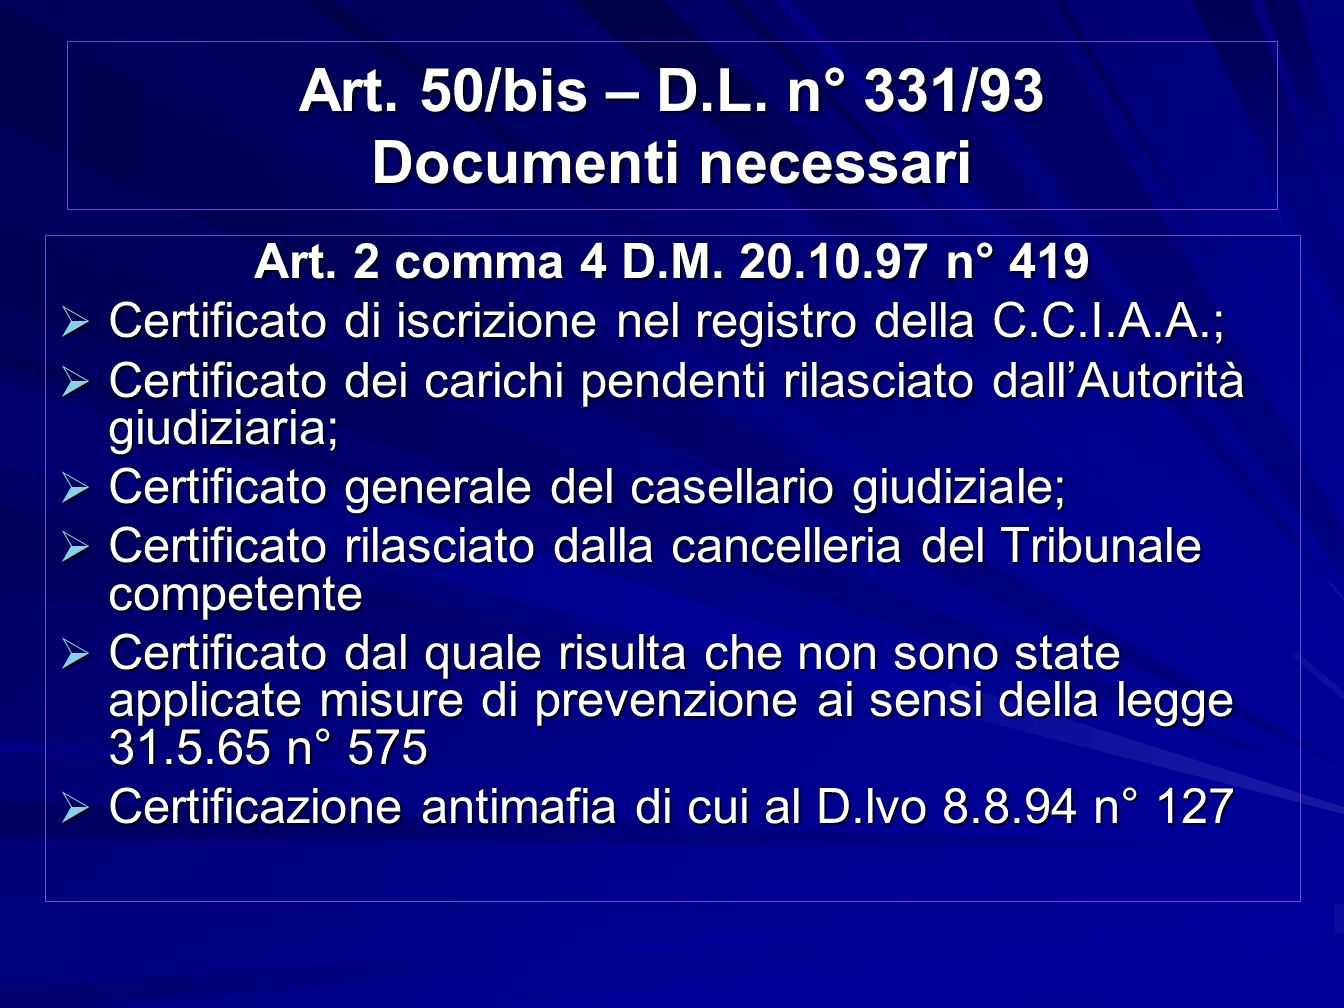 Art. 50/bis – D.L. n° 331/93 Documenti necessari